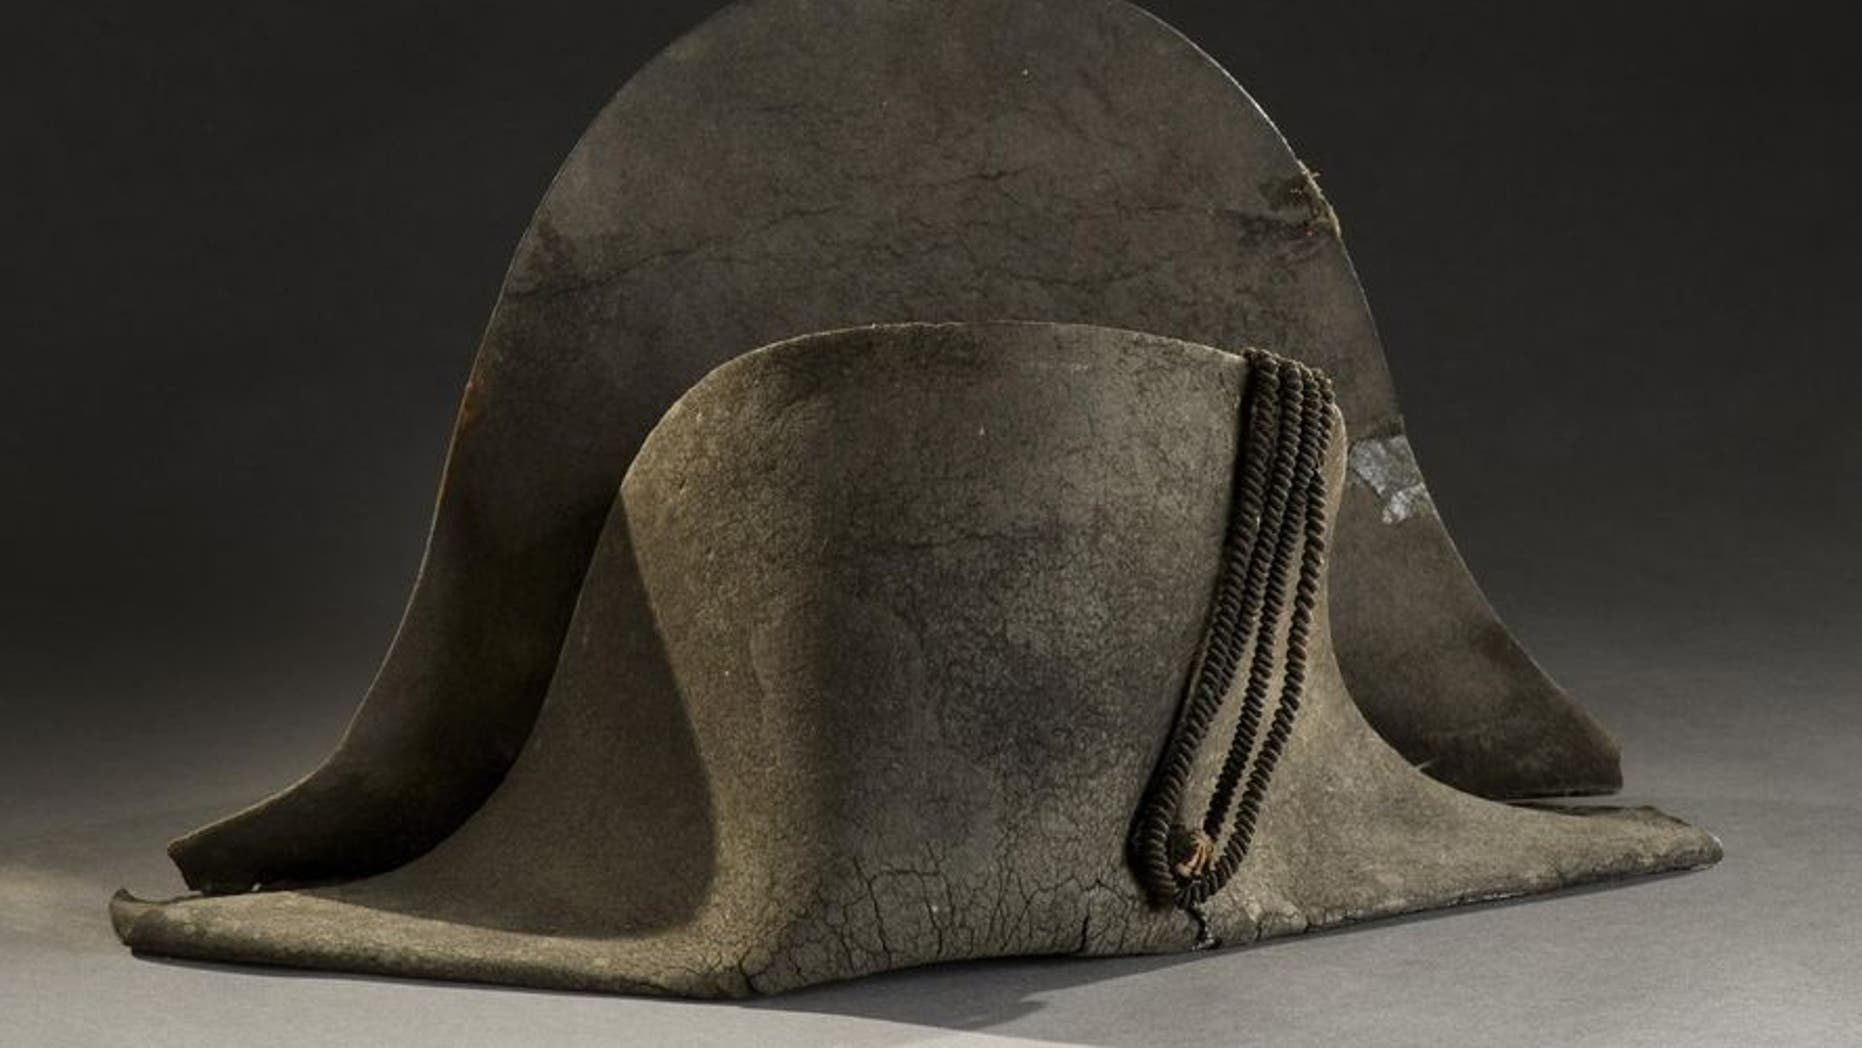 Napoleon wore the hat at the 1815 battle of Waterloo (De Baecque)